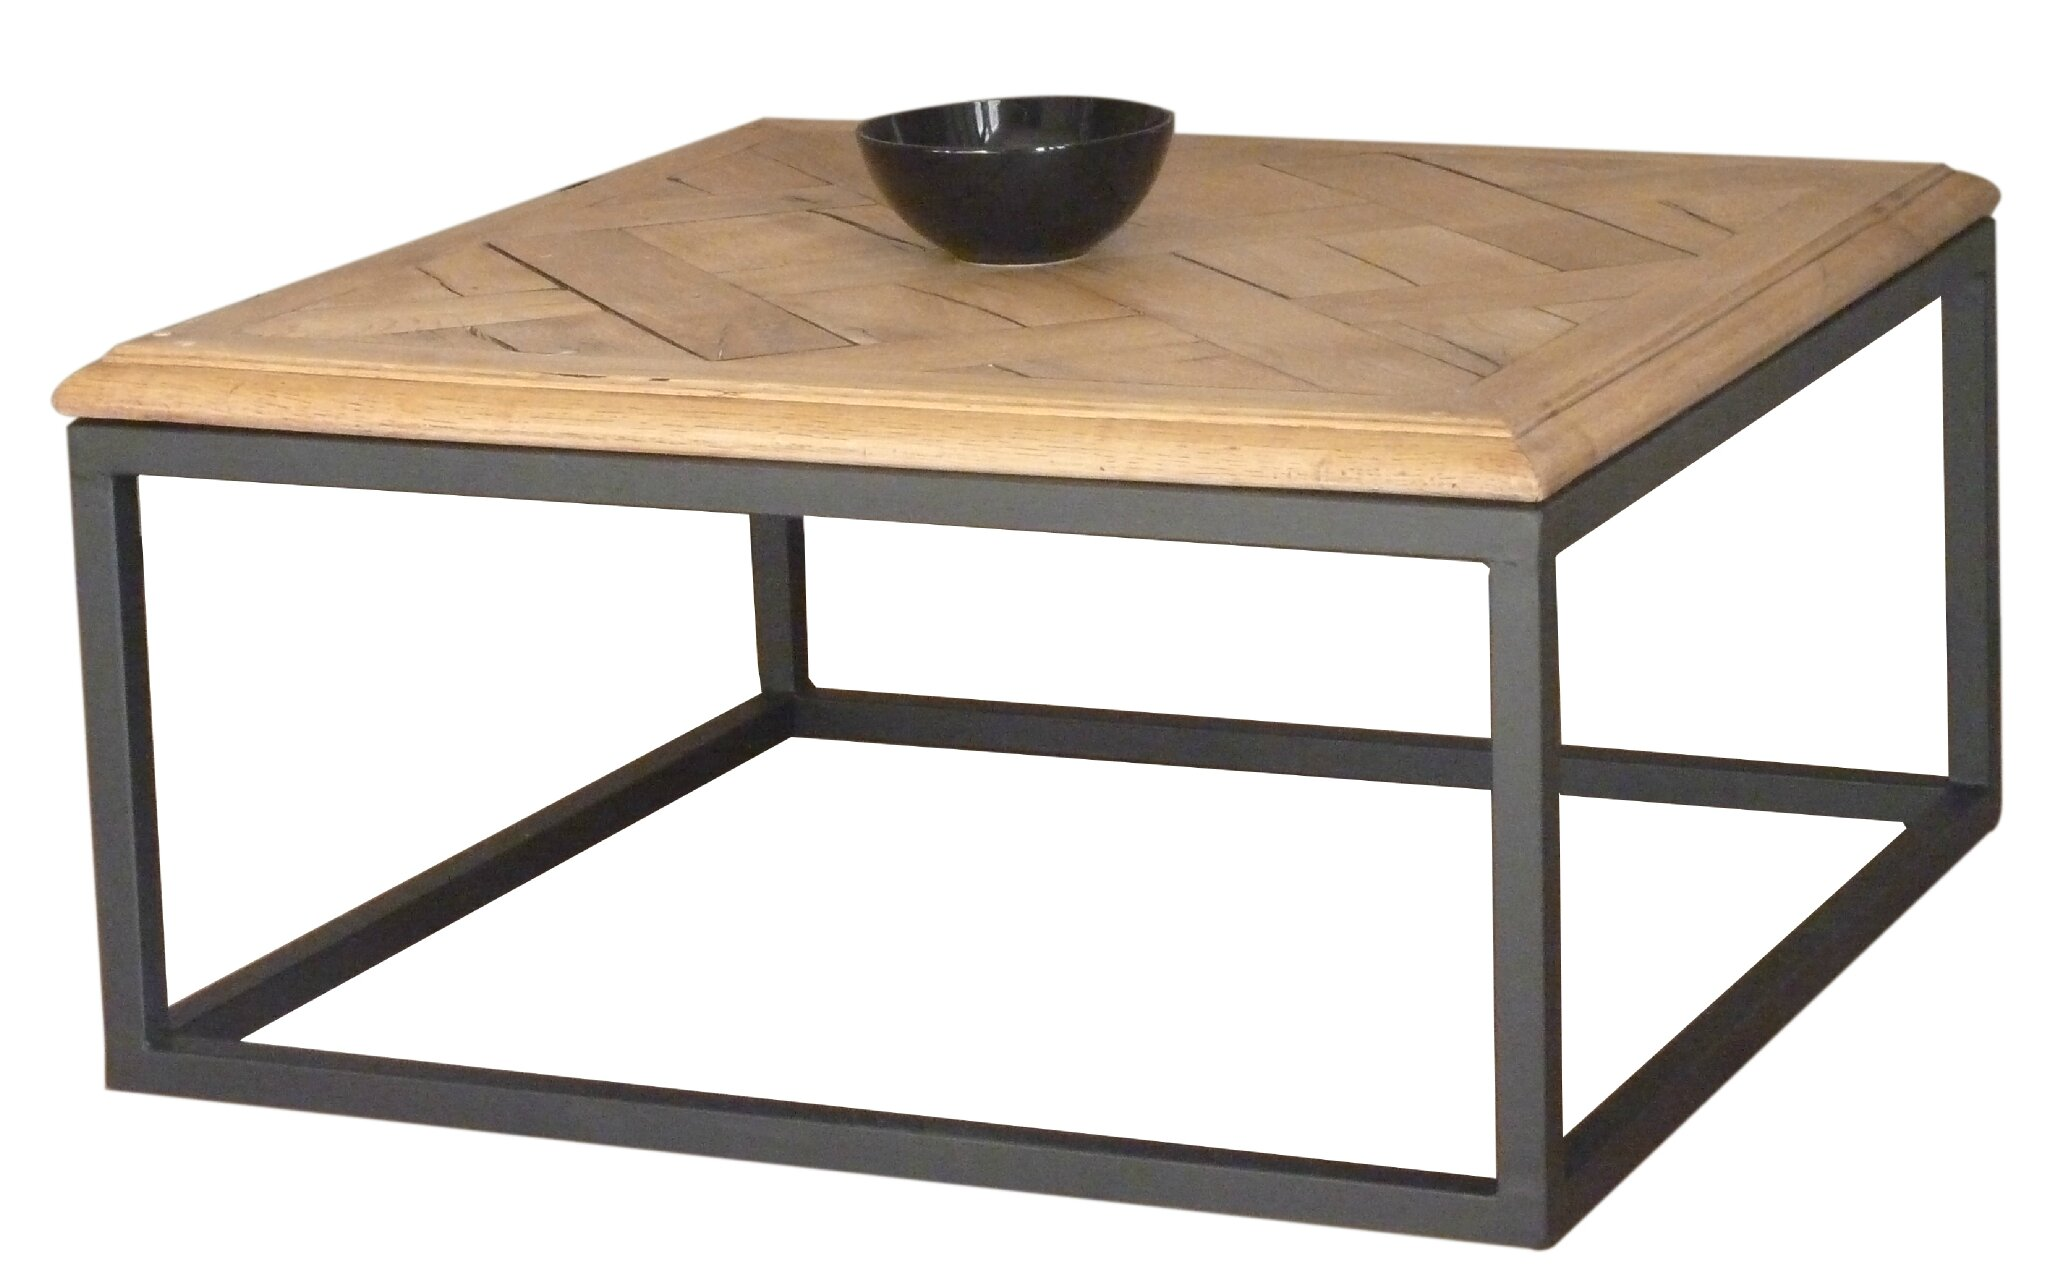 Ma table basse industrielle au 42 home for Table basse industrielle pas cher